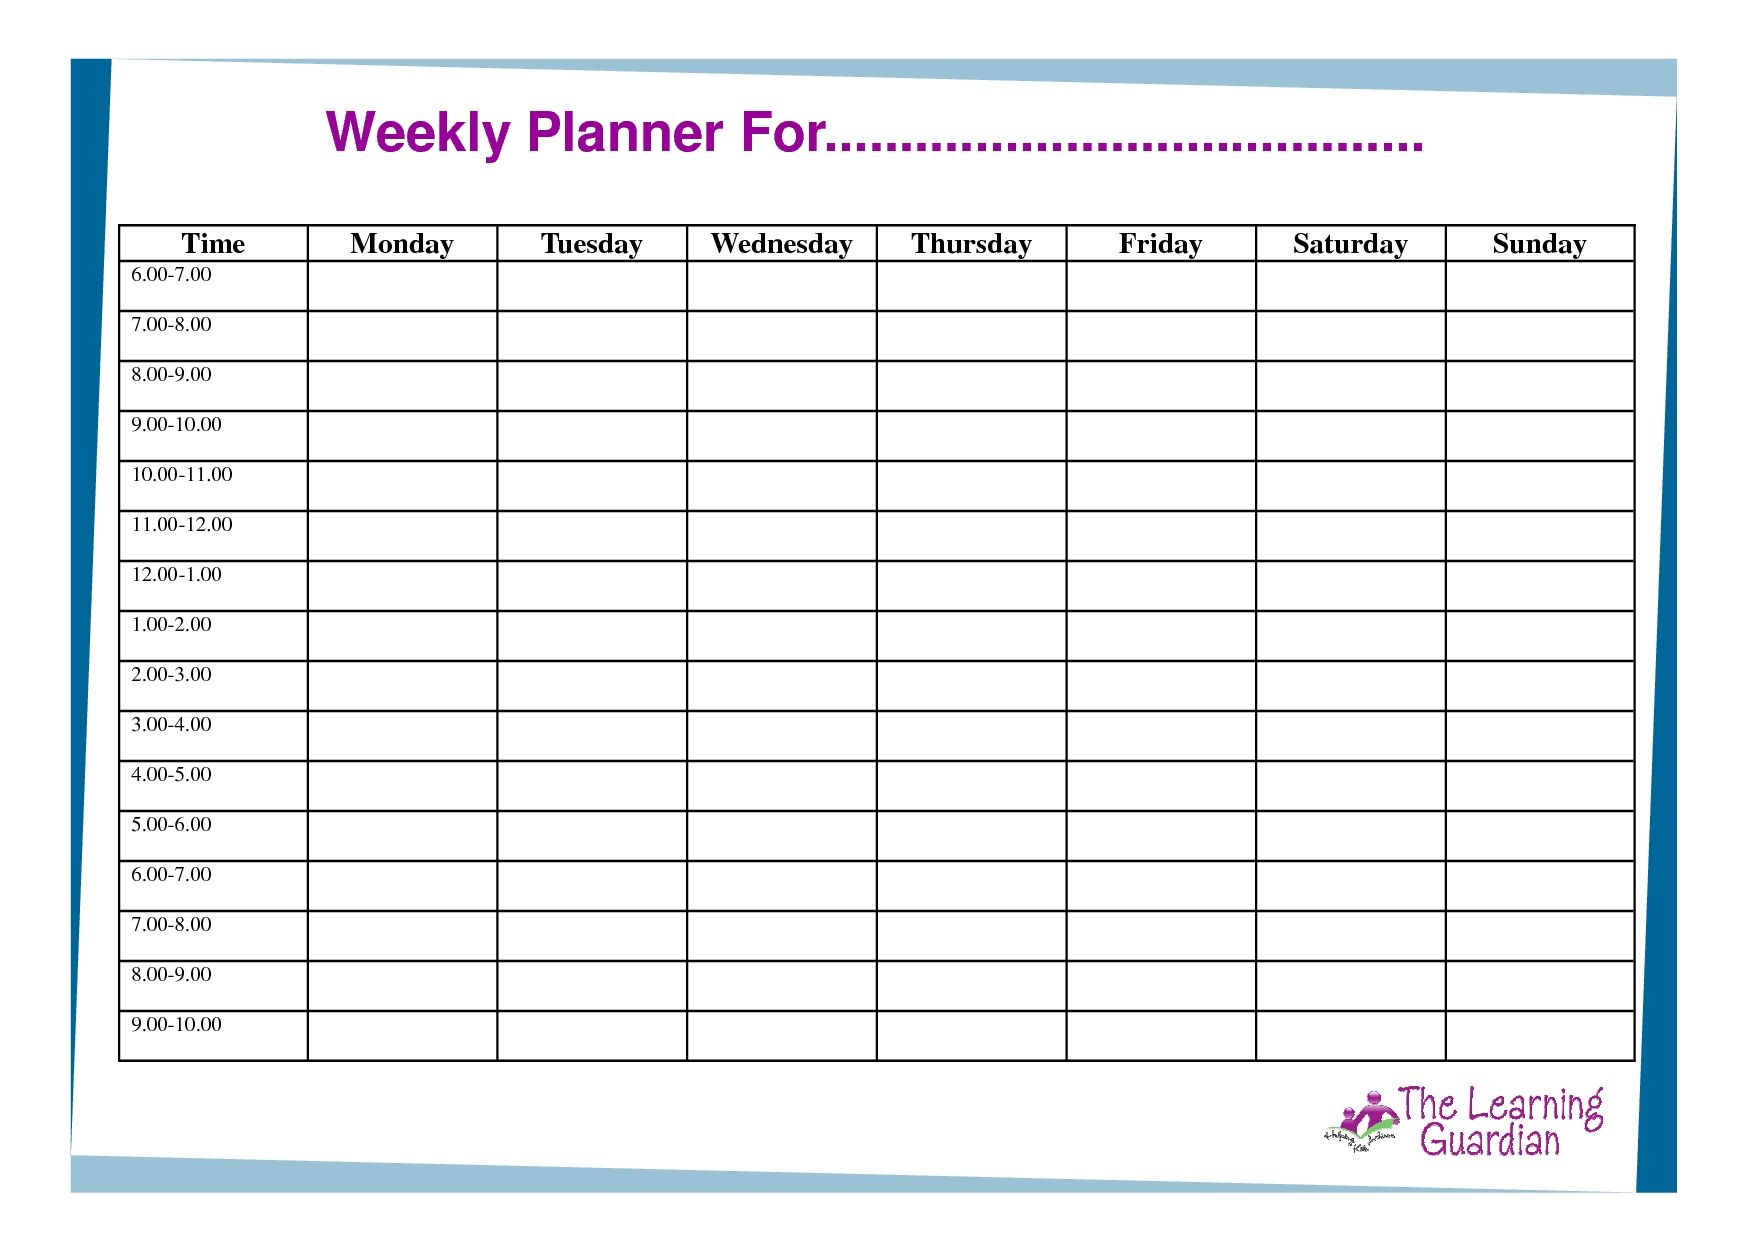 022 Weekly Hourly Schedule Template Ideas Excellent Planner throughout Hourly Weekly Schedule Pdf